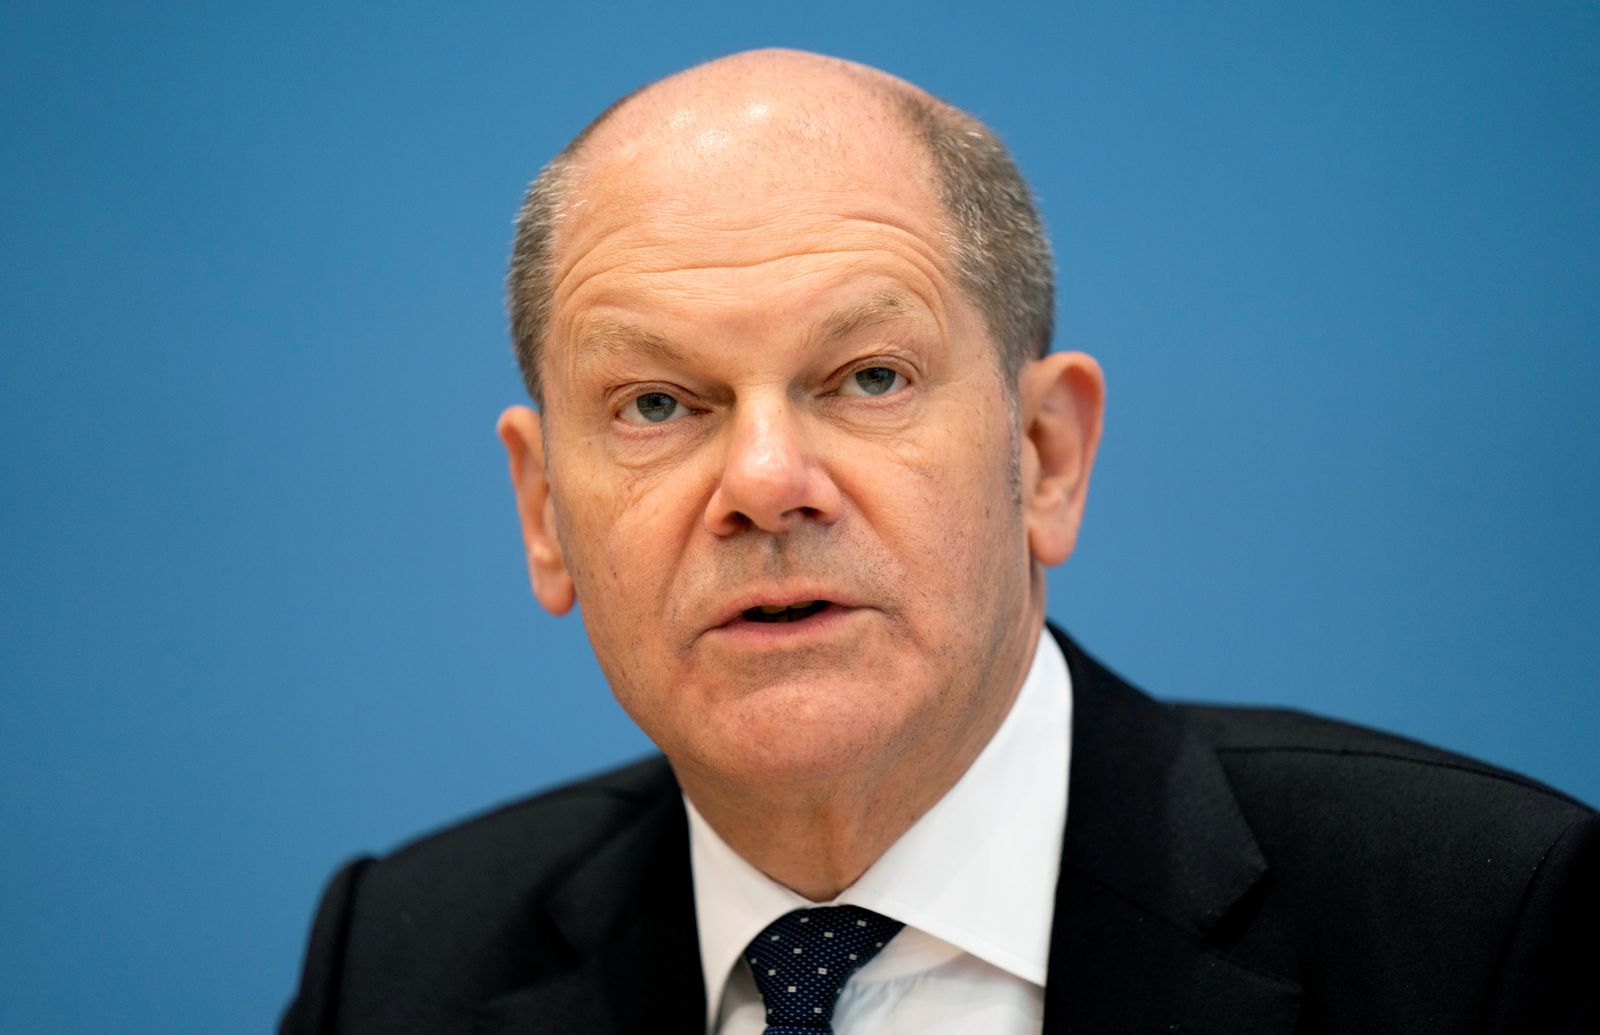 News conference on the tax estimate in Berlin